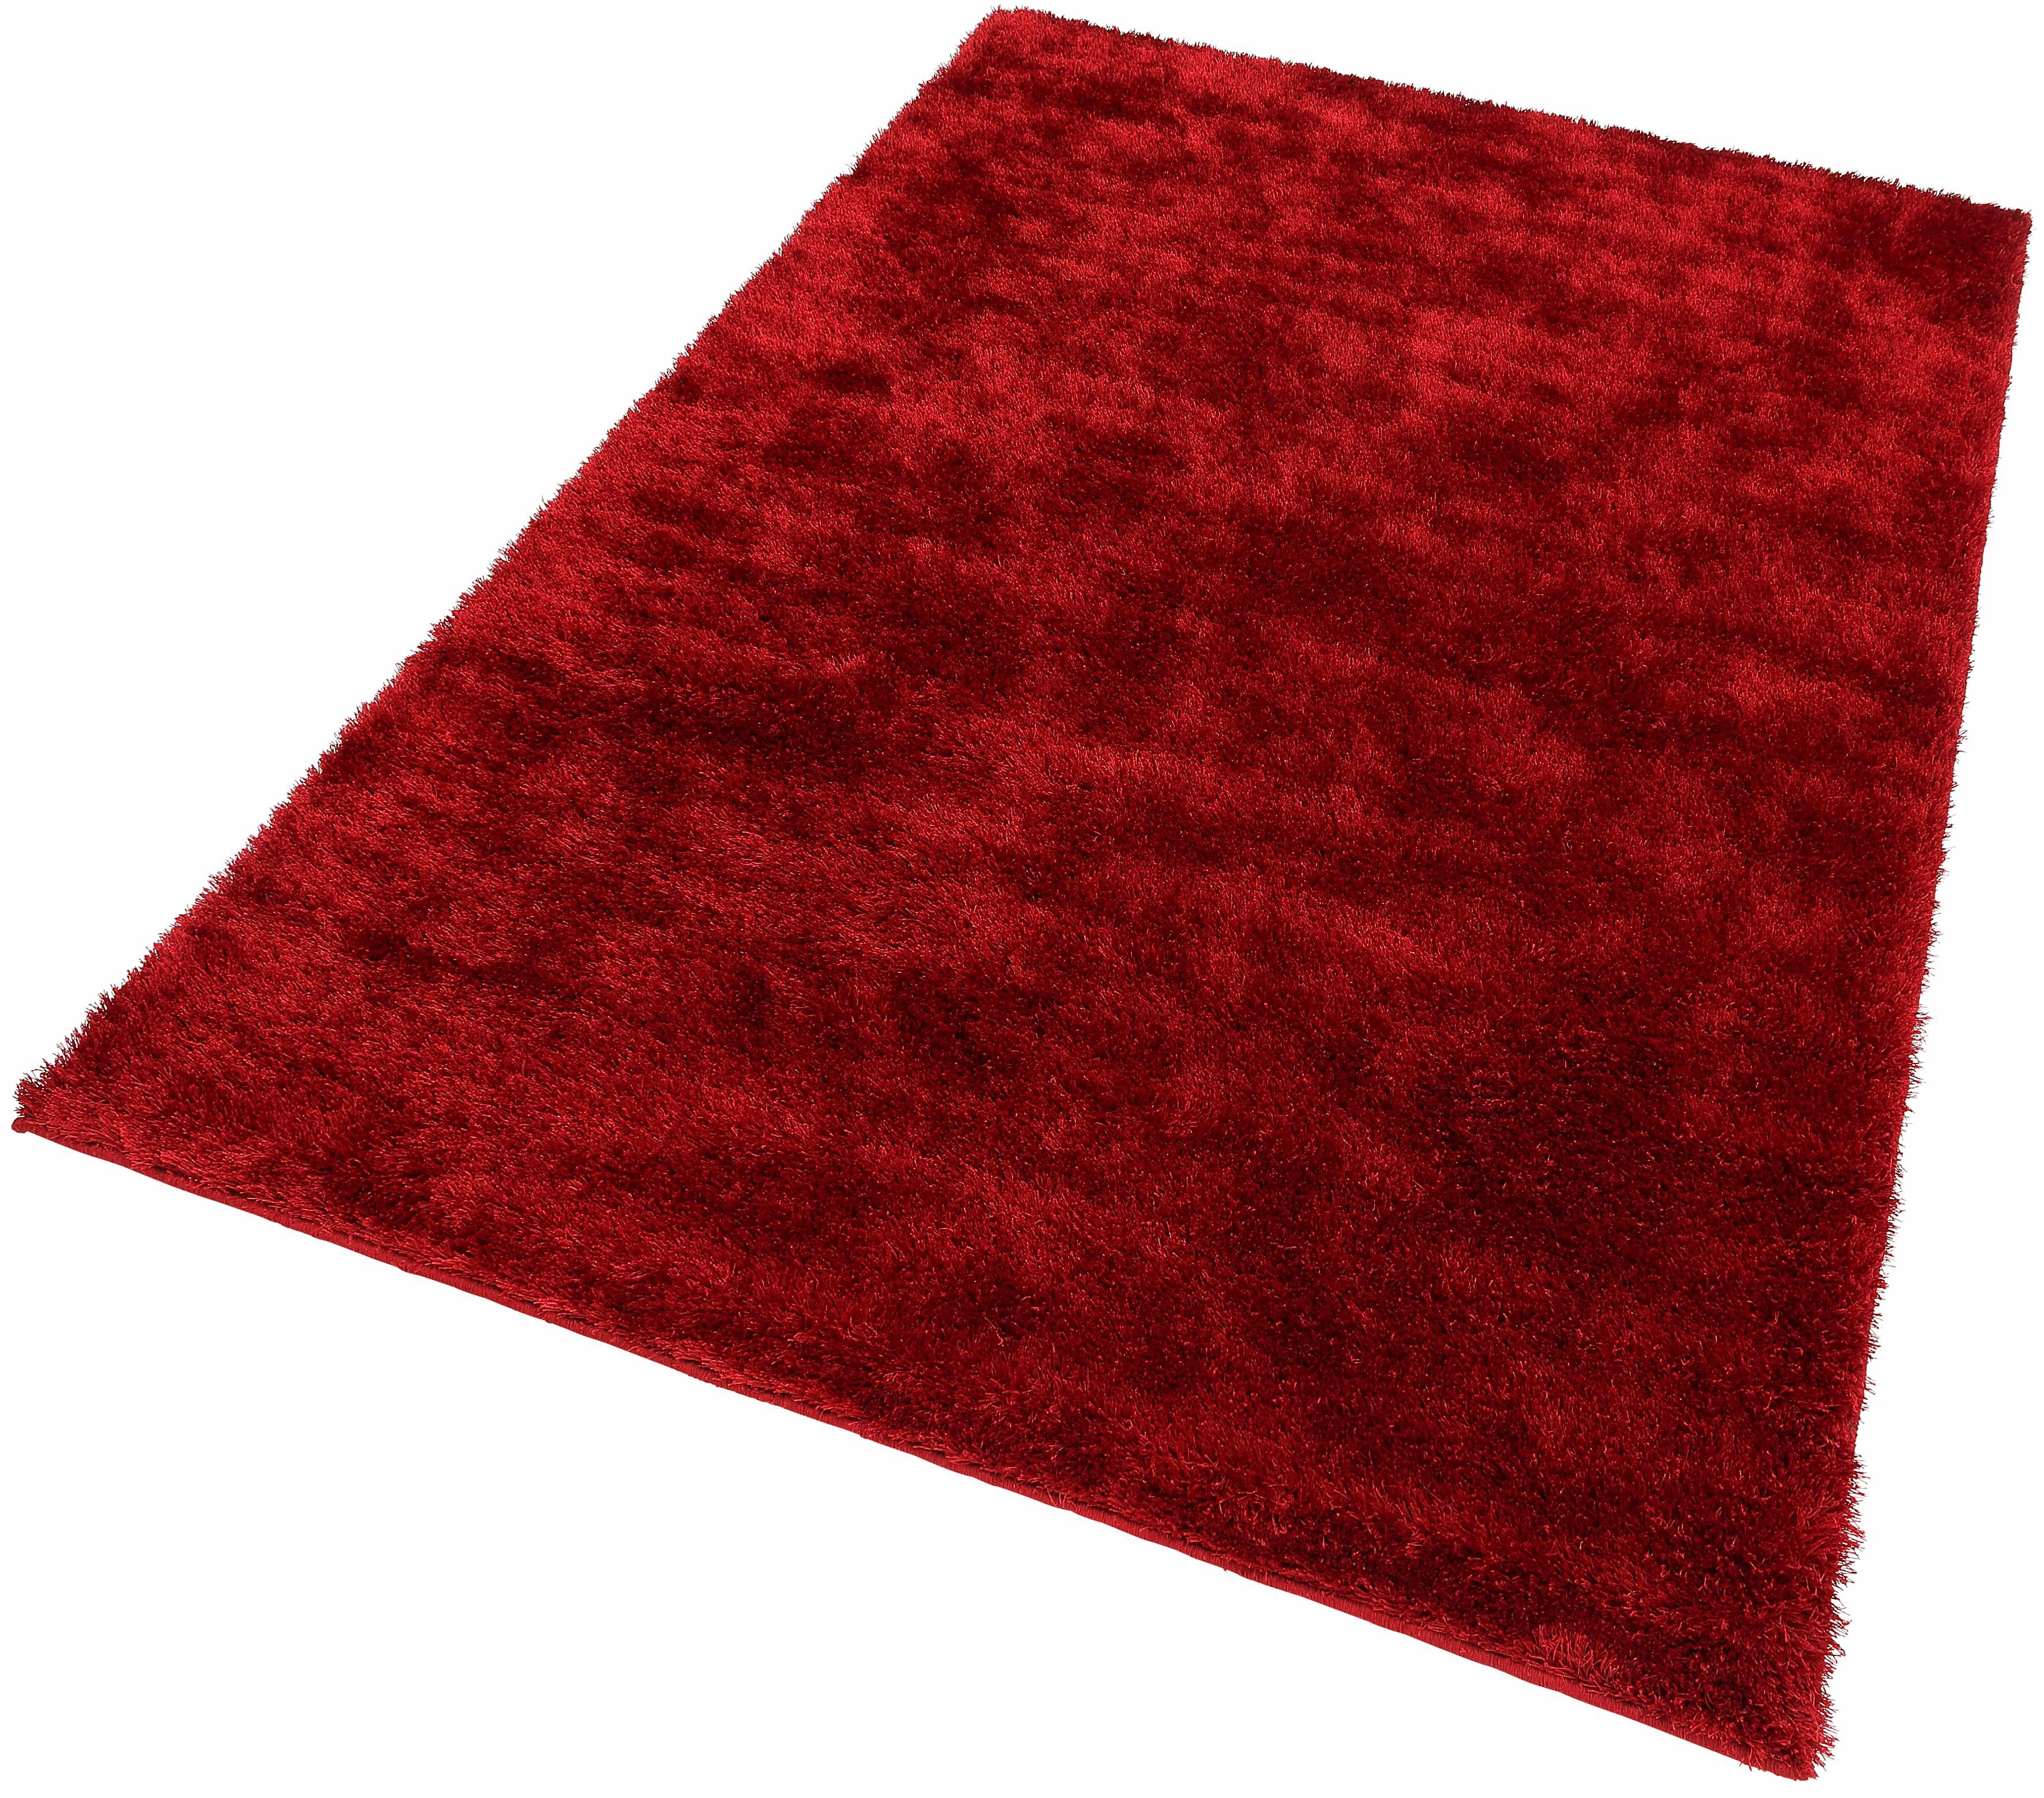 Teppich Rot Langflor Teppich In Rot Hausdesign Teppich Rot Wei Weis Laufer Modern With